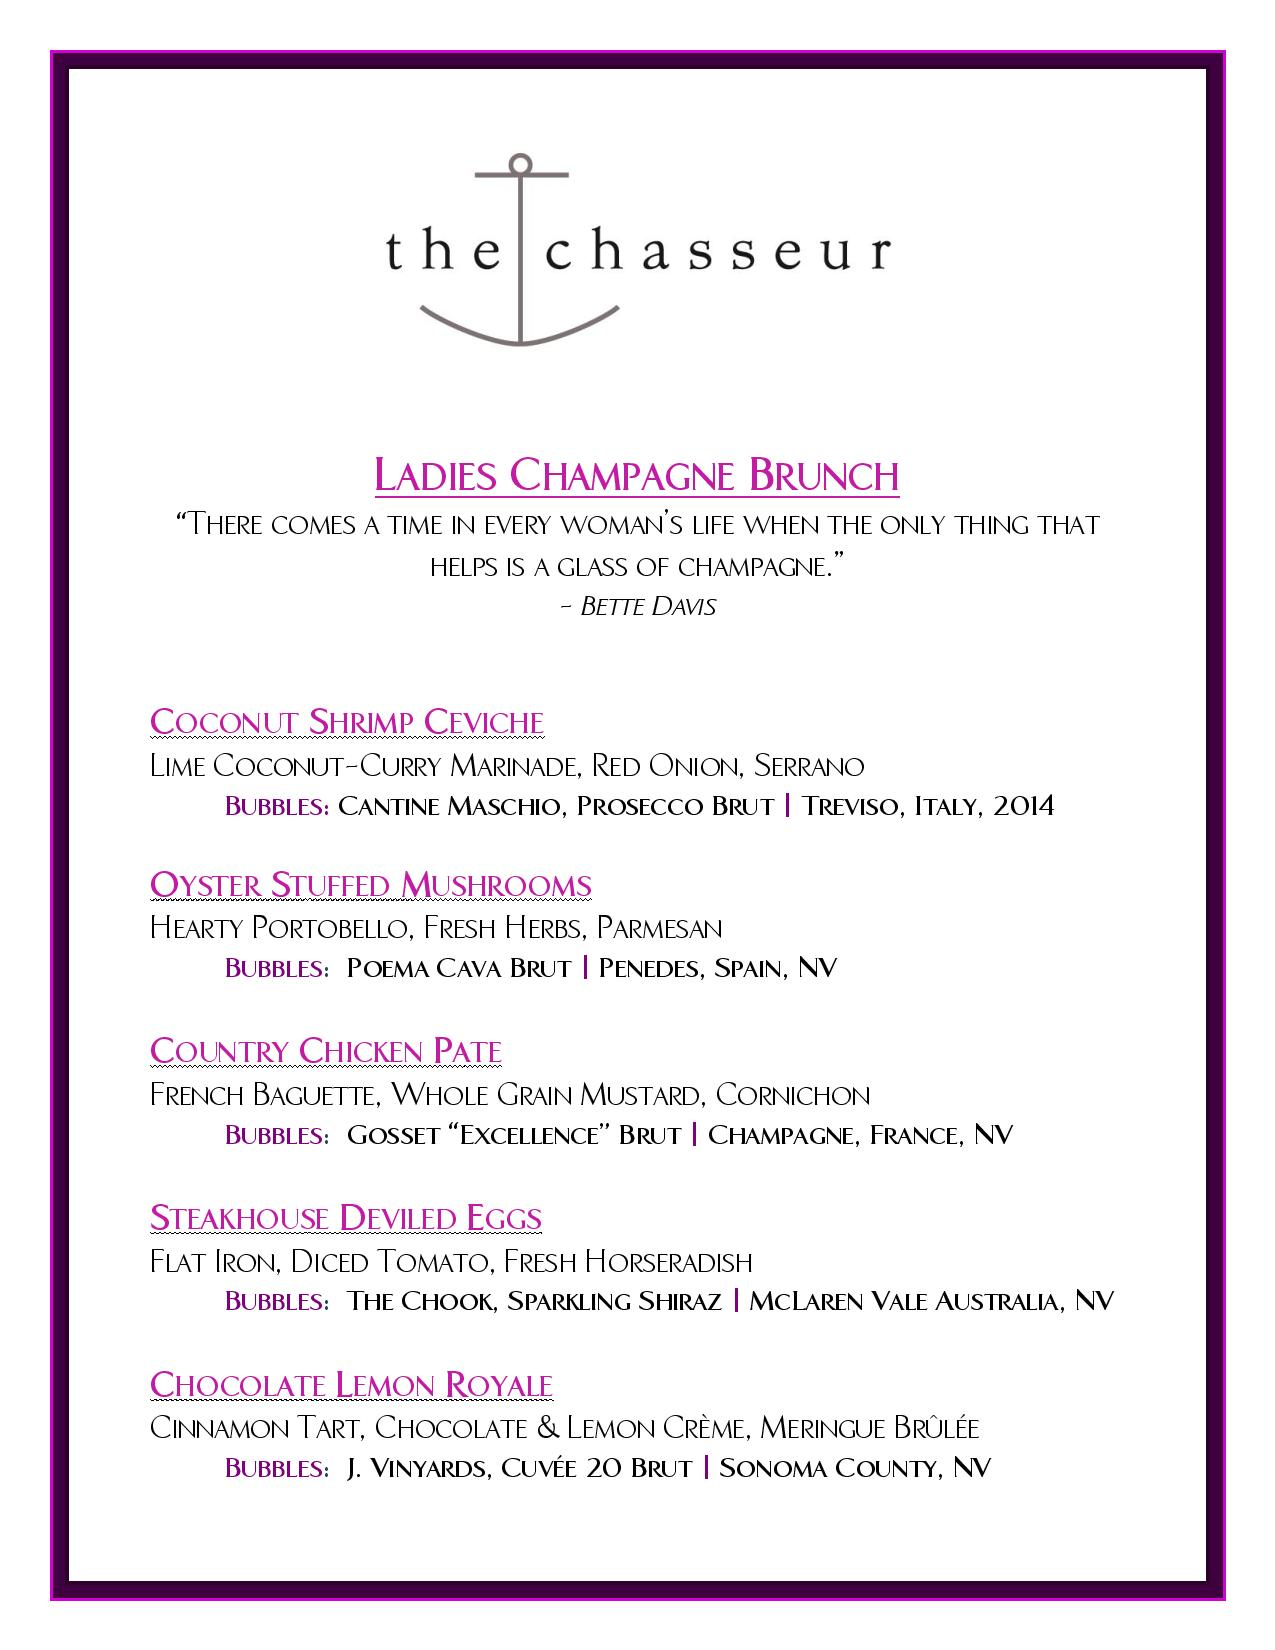 Ladies Champagne Brunch February 2015